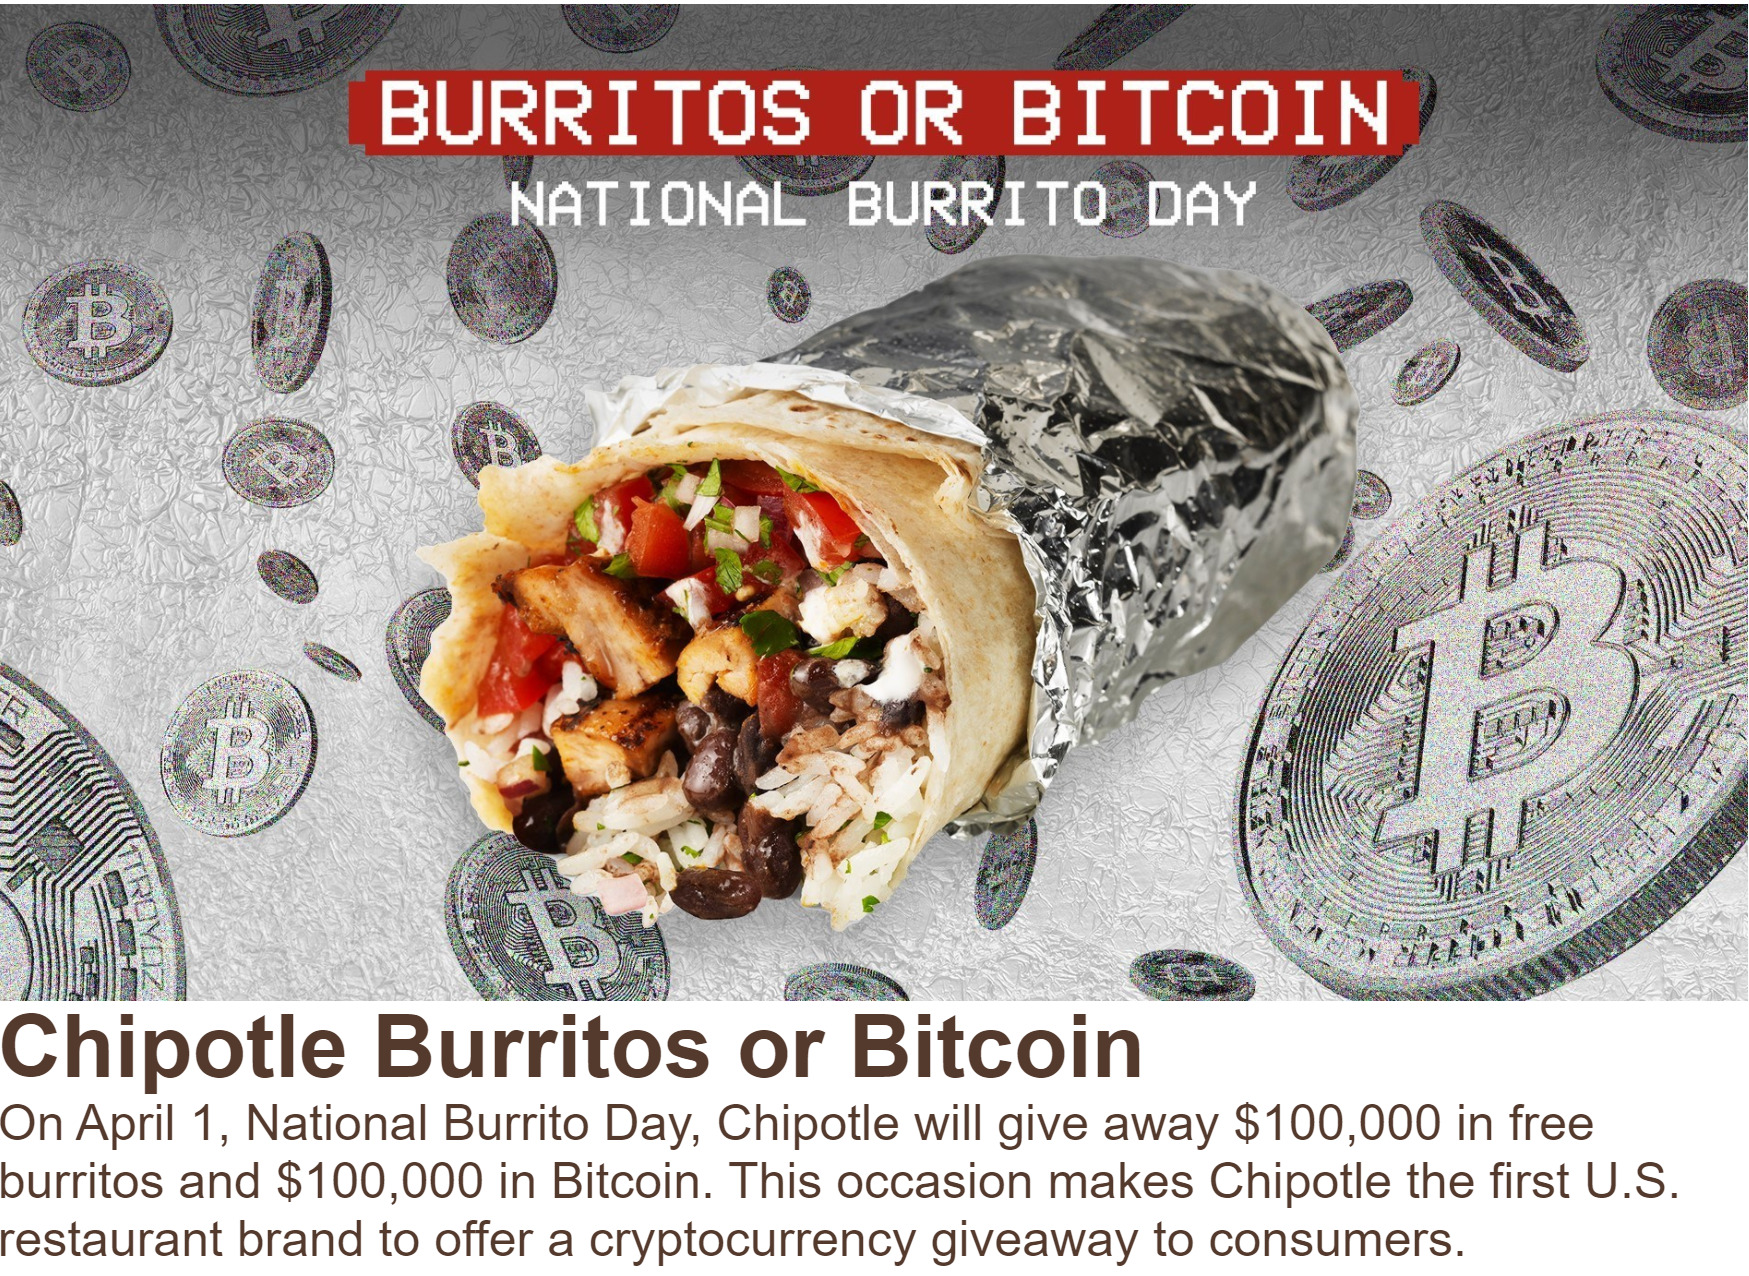 Free Bitcoin: Major US Fast Food Chain Chipotle Giving Away $100K in BTC to Celebrate National Burrito Day